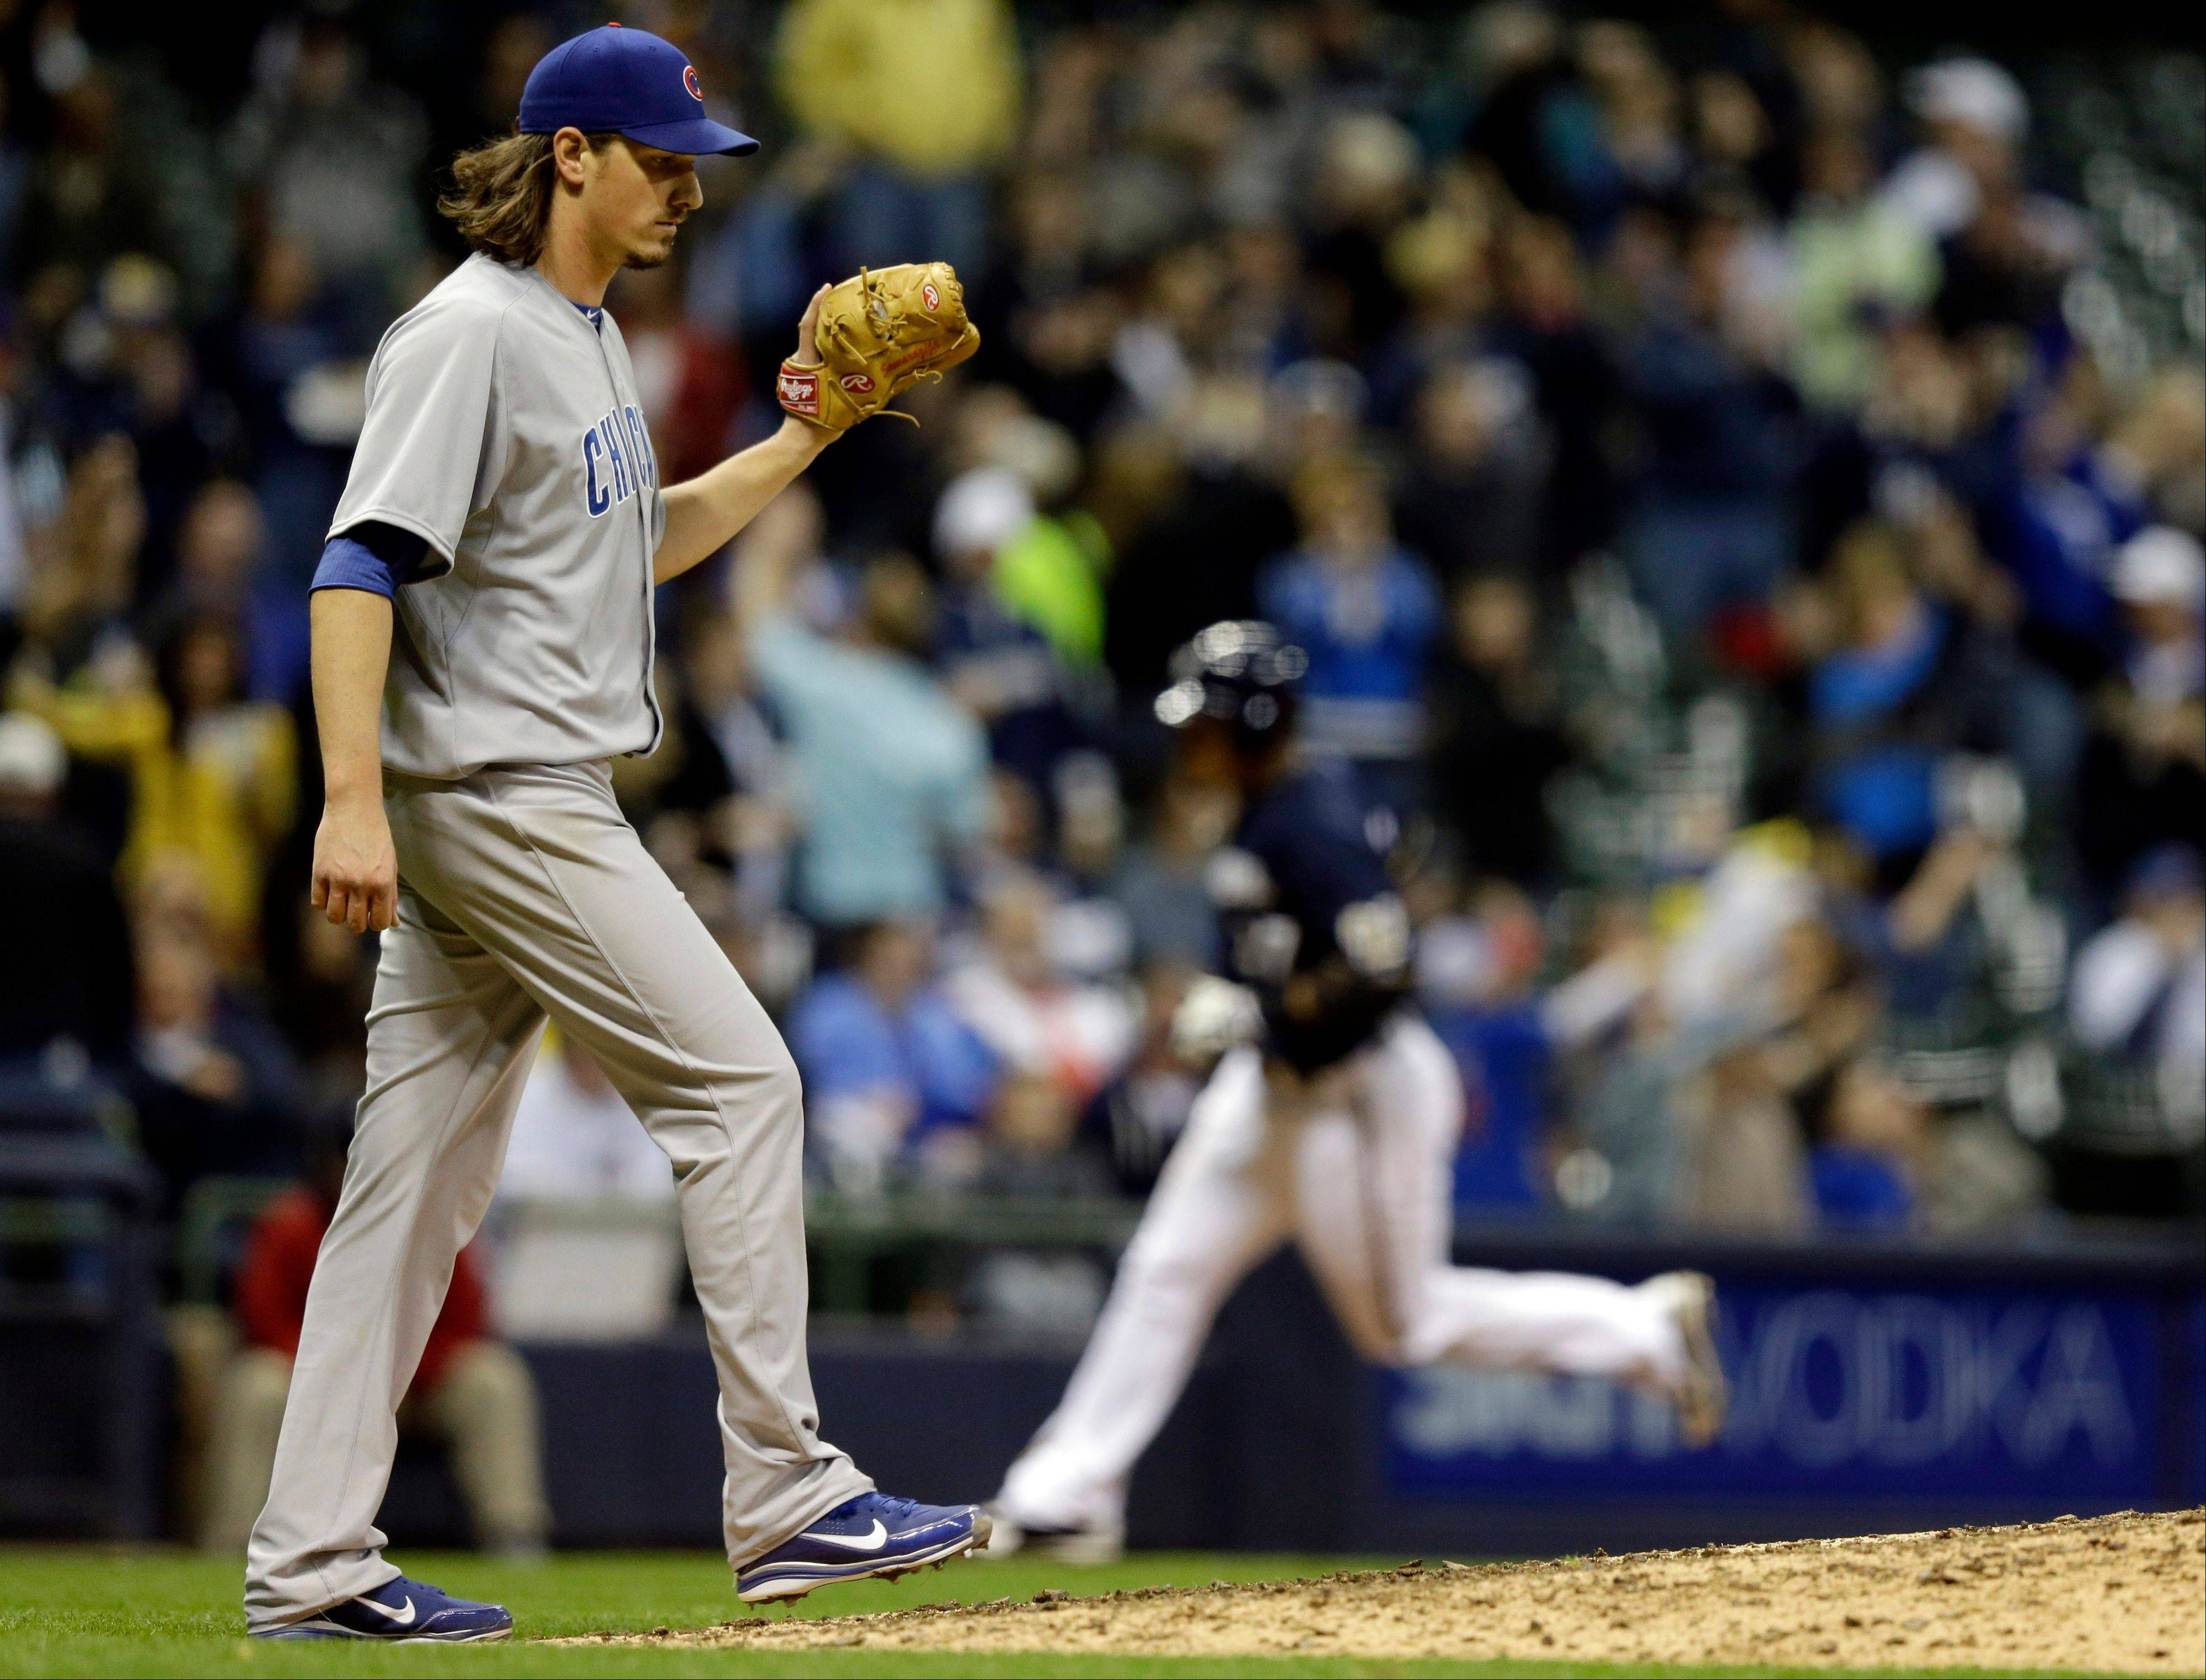 Chicago Cubs starting pitcher Jeff Samardzija reacts as Milwaukee Brewers' Carlos Gomez rounds the bases after hitting a home run during the seventh inning of a baseball game Friday, April 19, 2013, in Milwaukee. (AP Photo/Morry Gash)